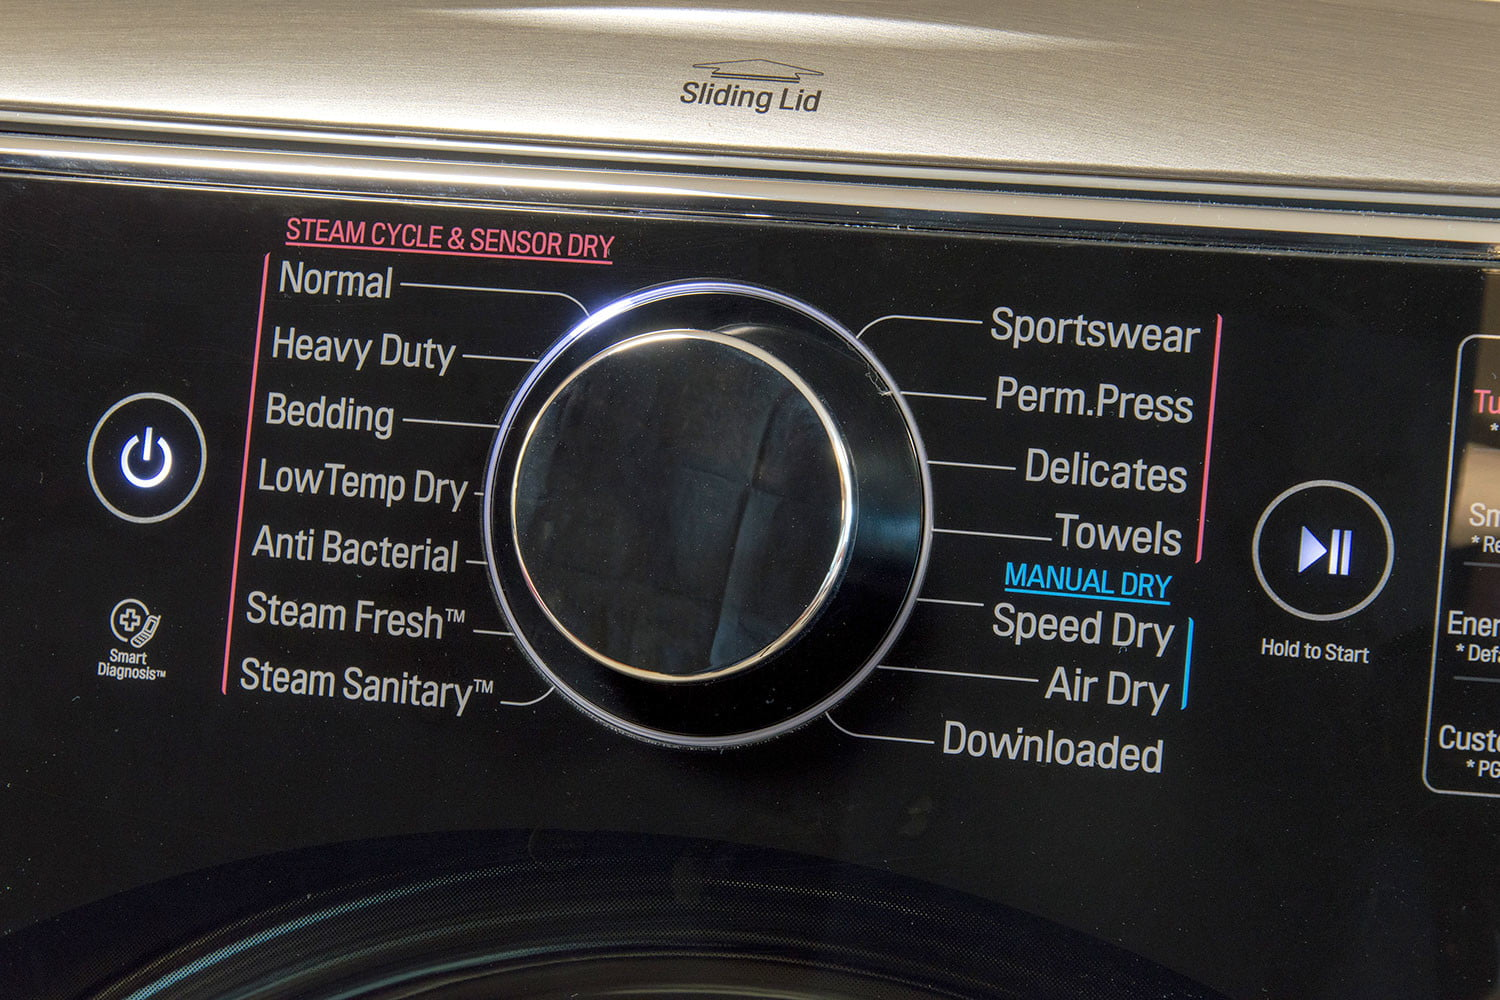 Miraculous Gas Dryers Vs Electric Dryers Whats The Difference Digital Trends Wiring Digital Resources Remcakbiperorg